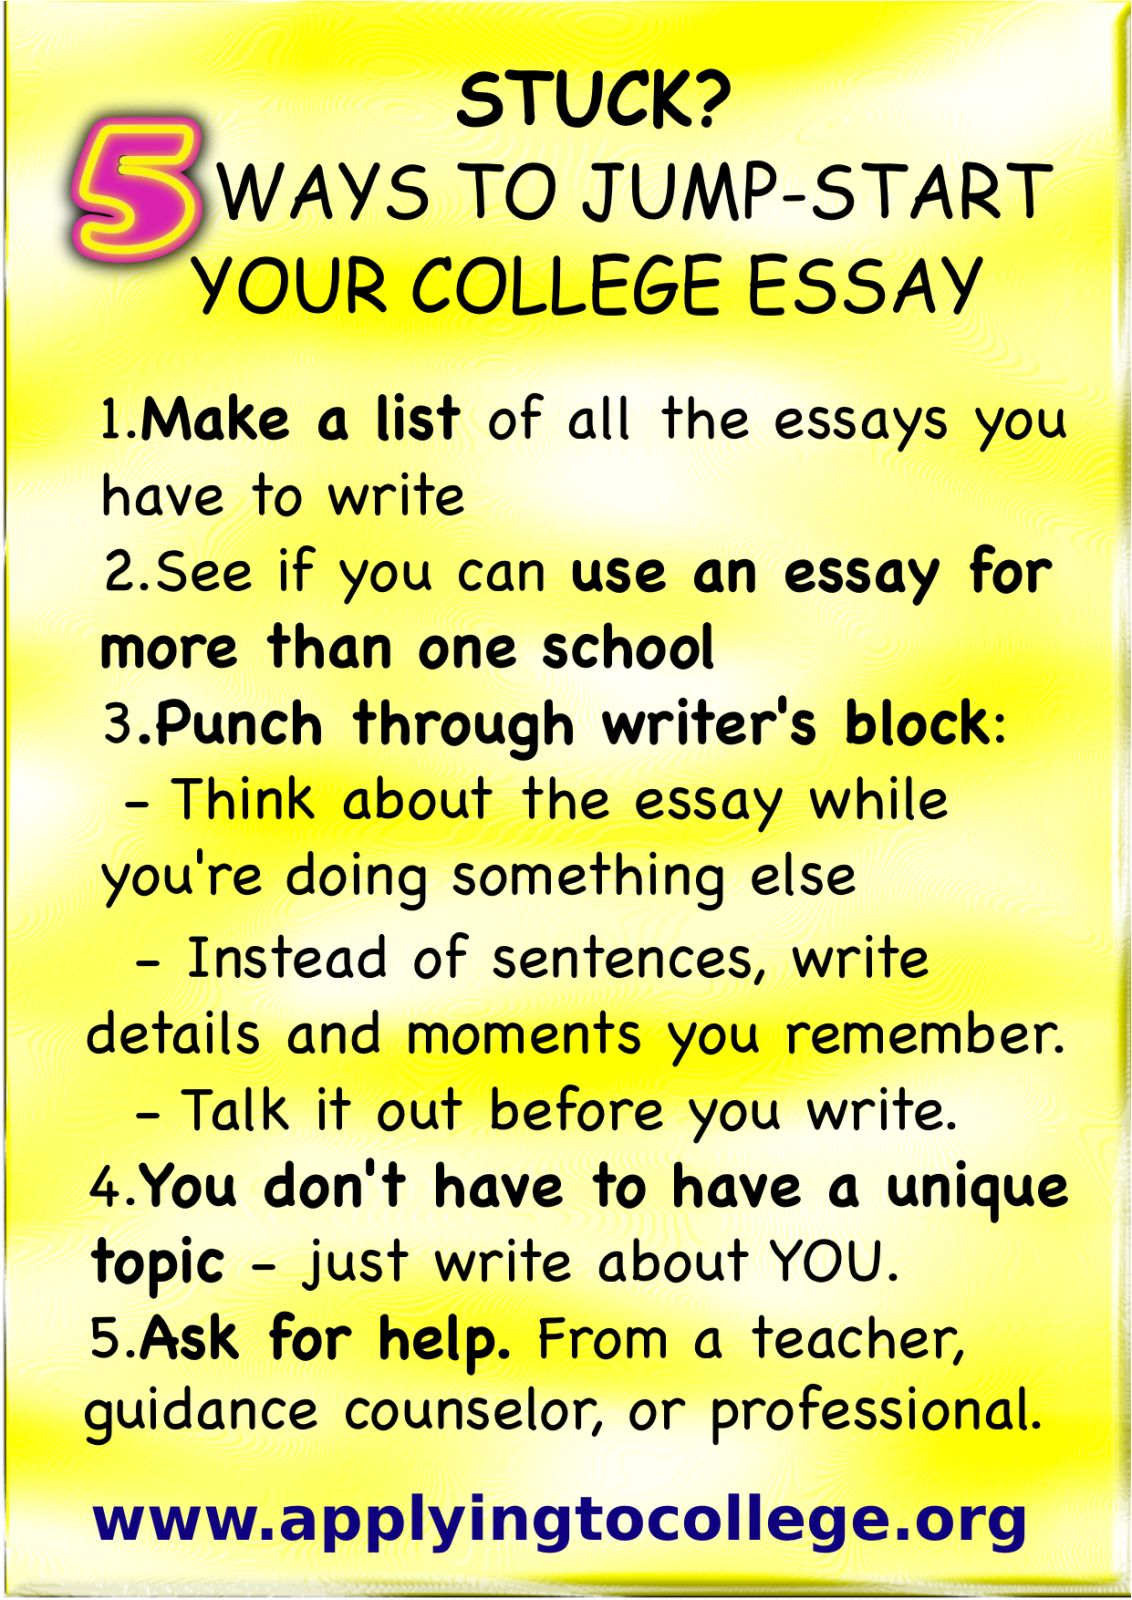 stuck  tips to jumpstart your college essay  college  college   tips to jumpstart your college essay